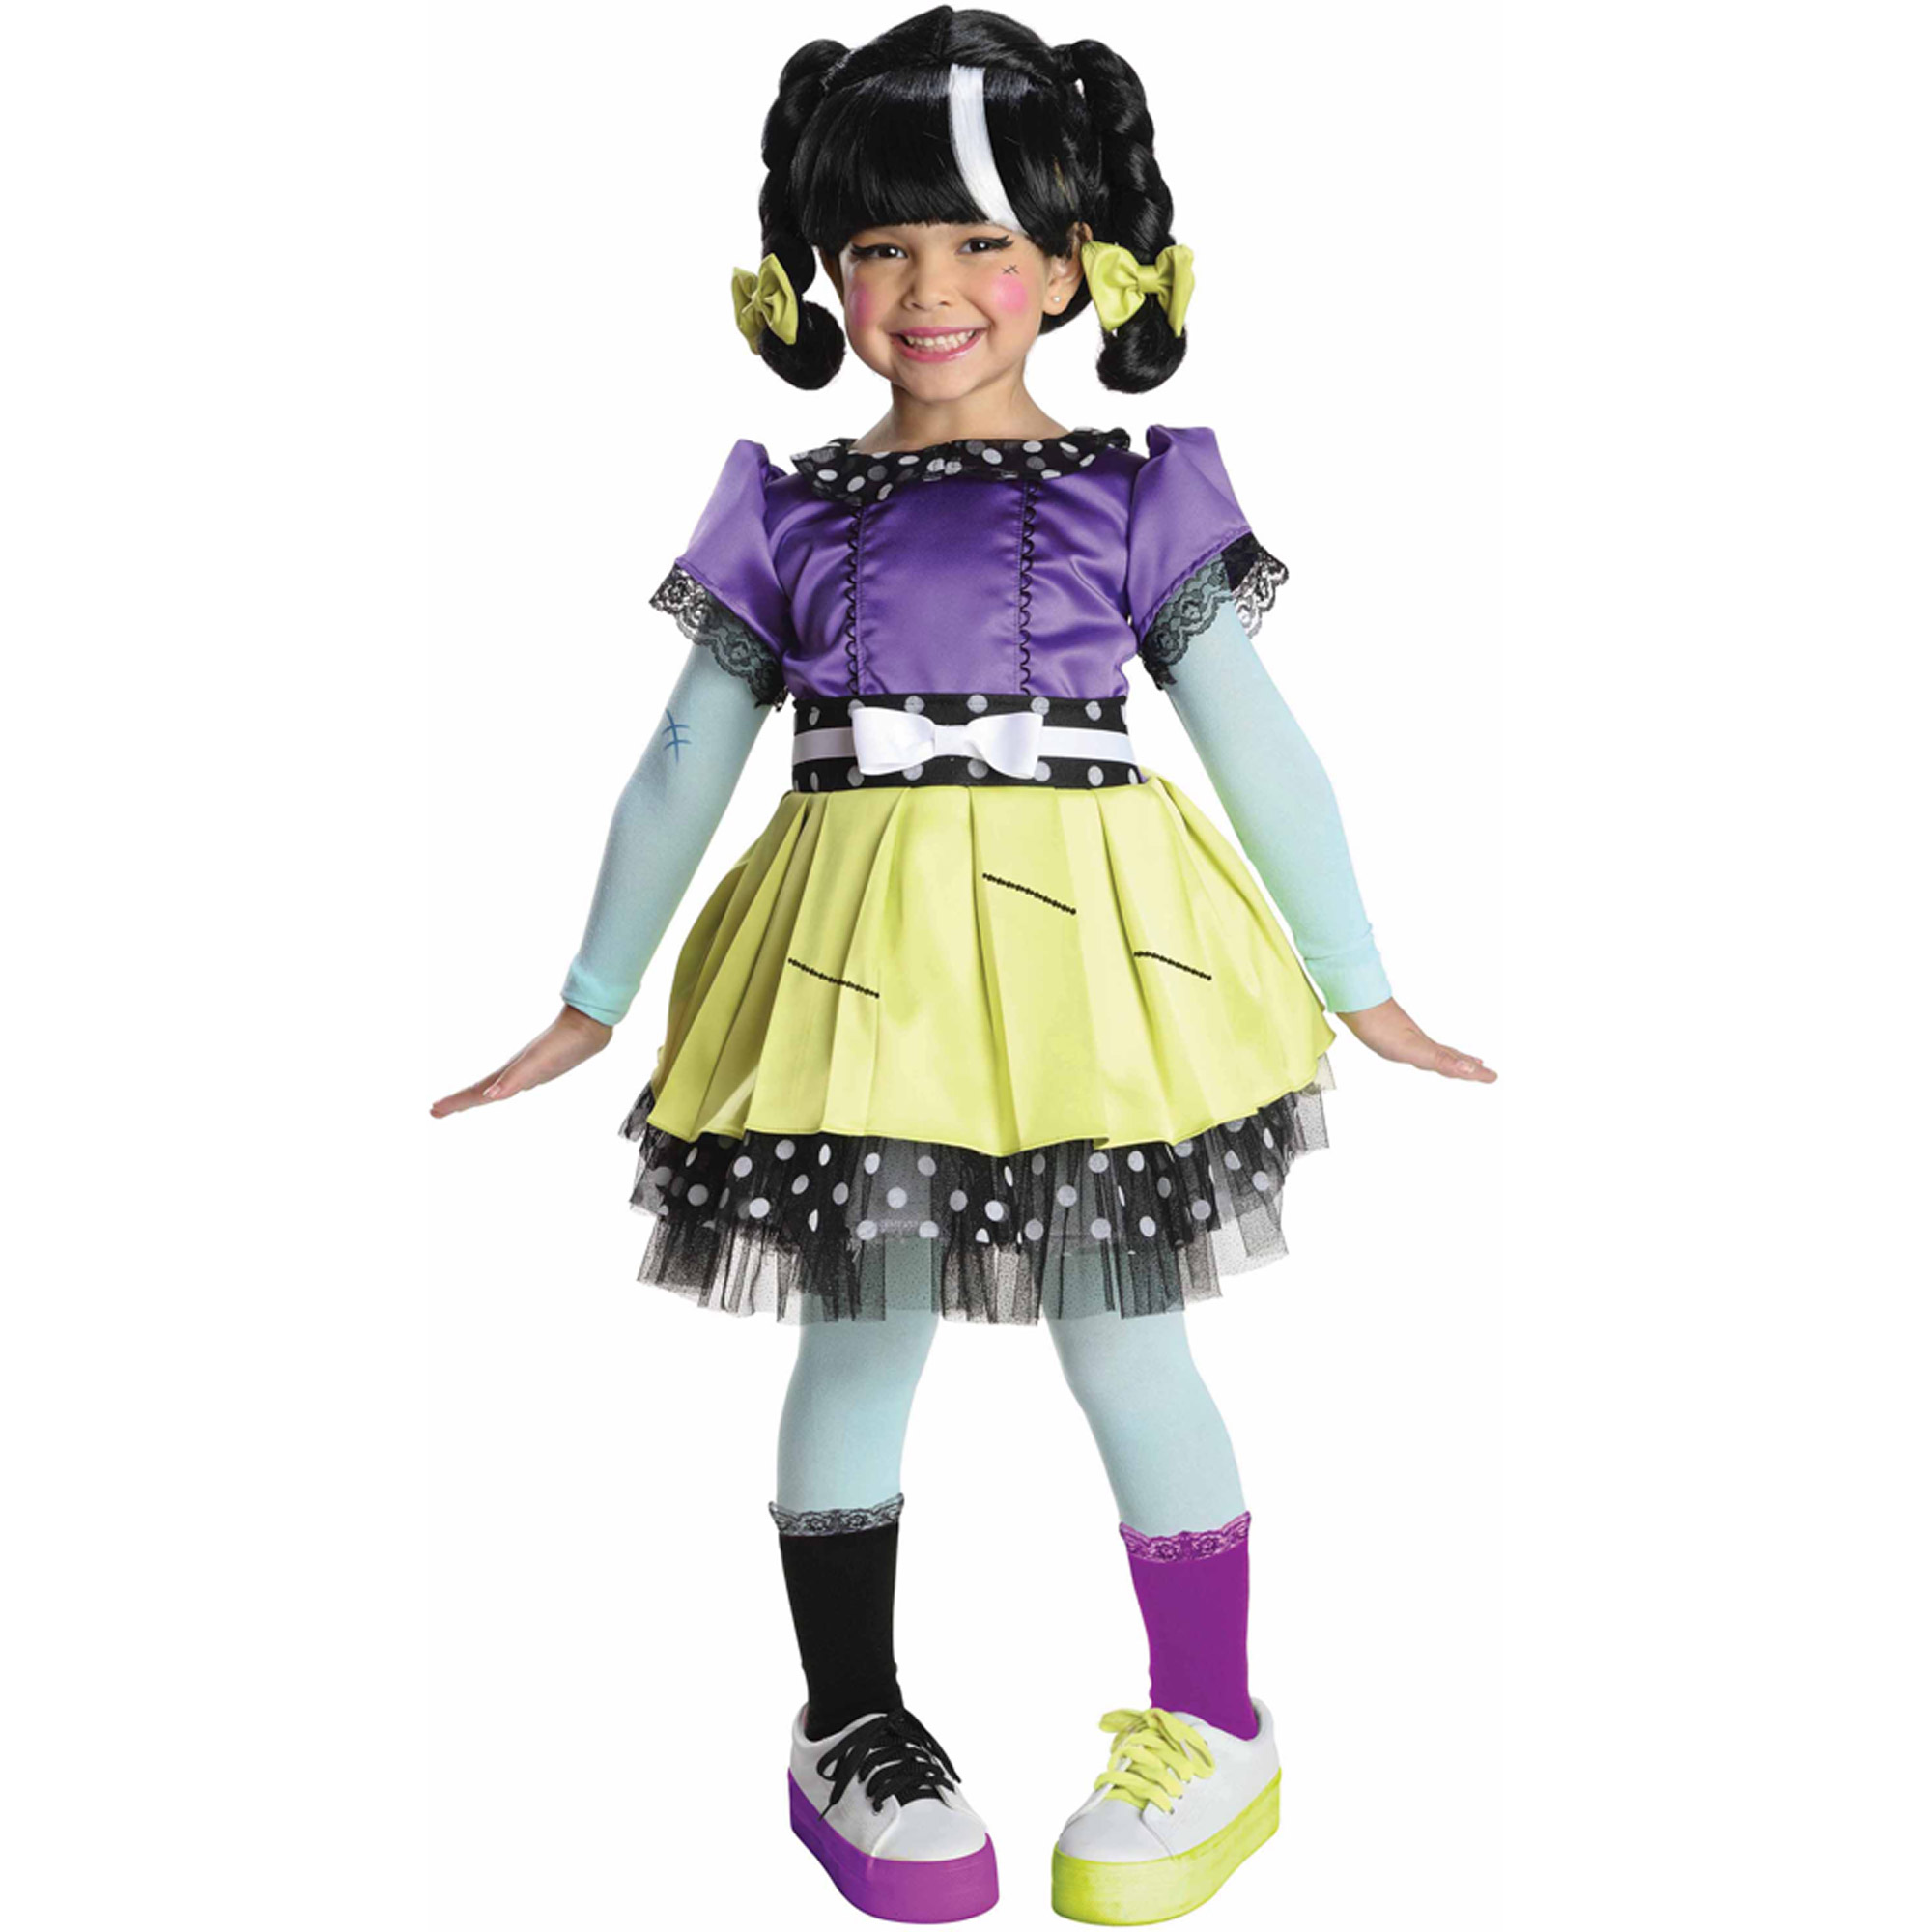 Scraps Stitched N Sewn Child Halloween Dress Up / Role Play Costume